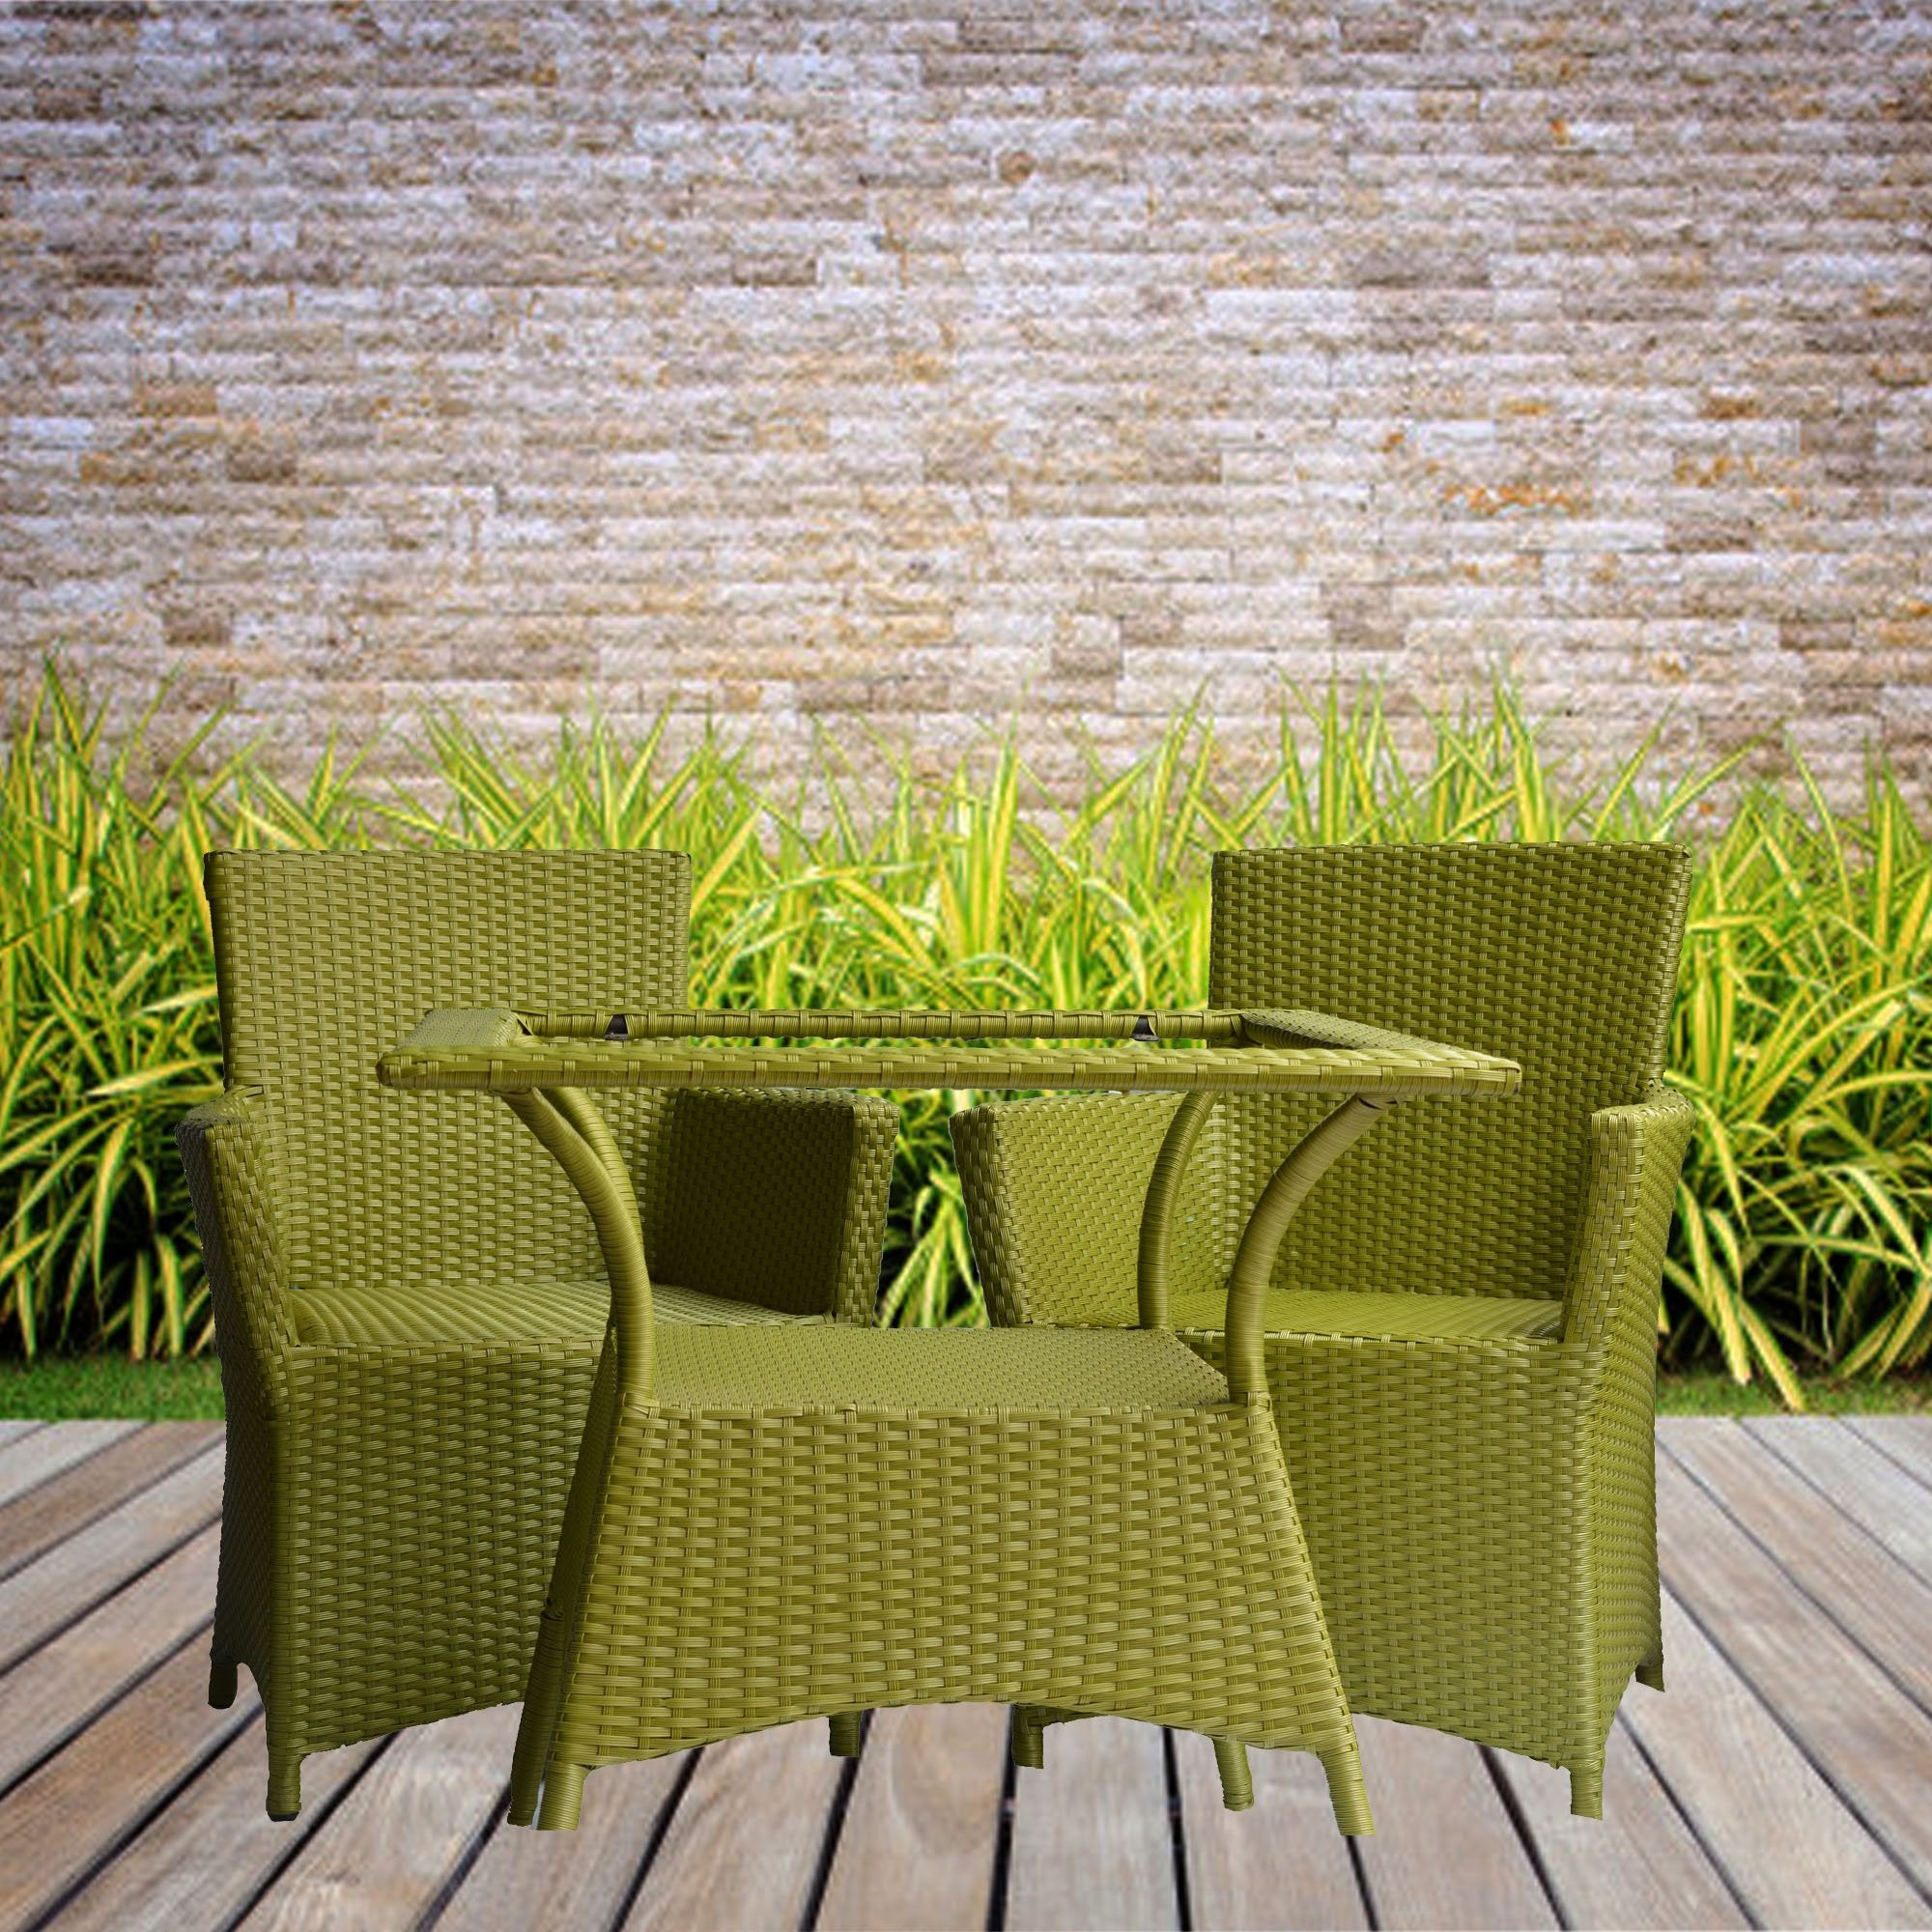 Outdoor Furniture for Evergreen look